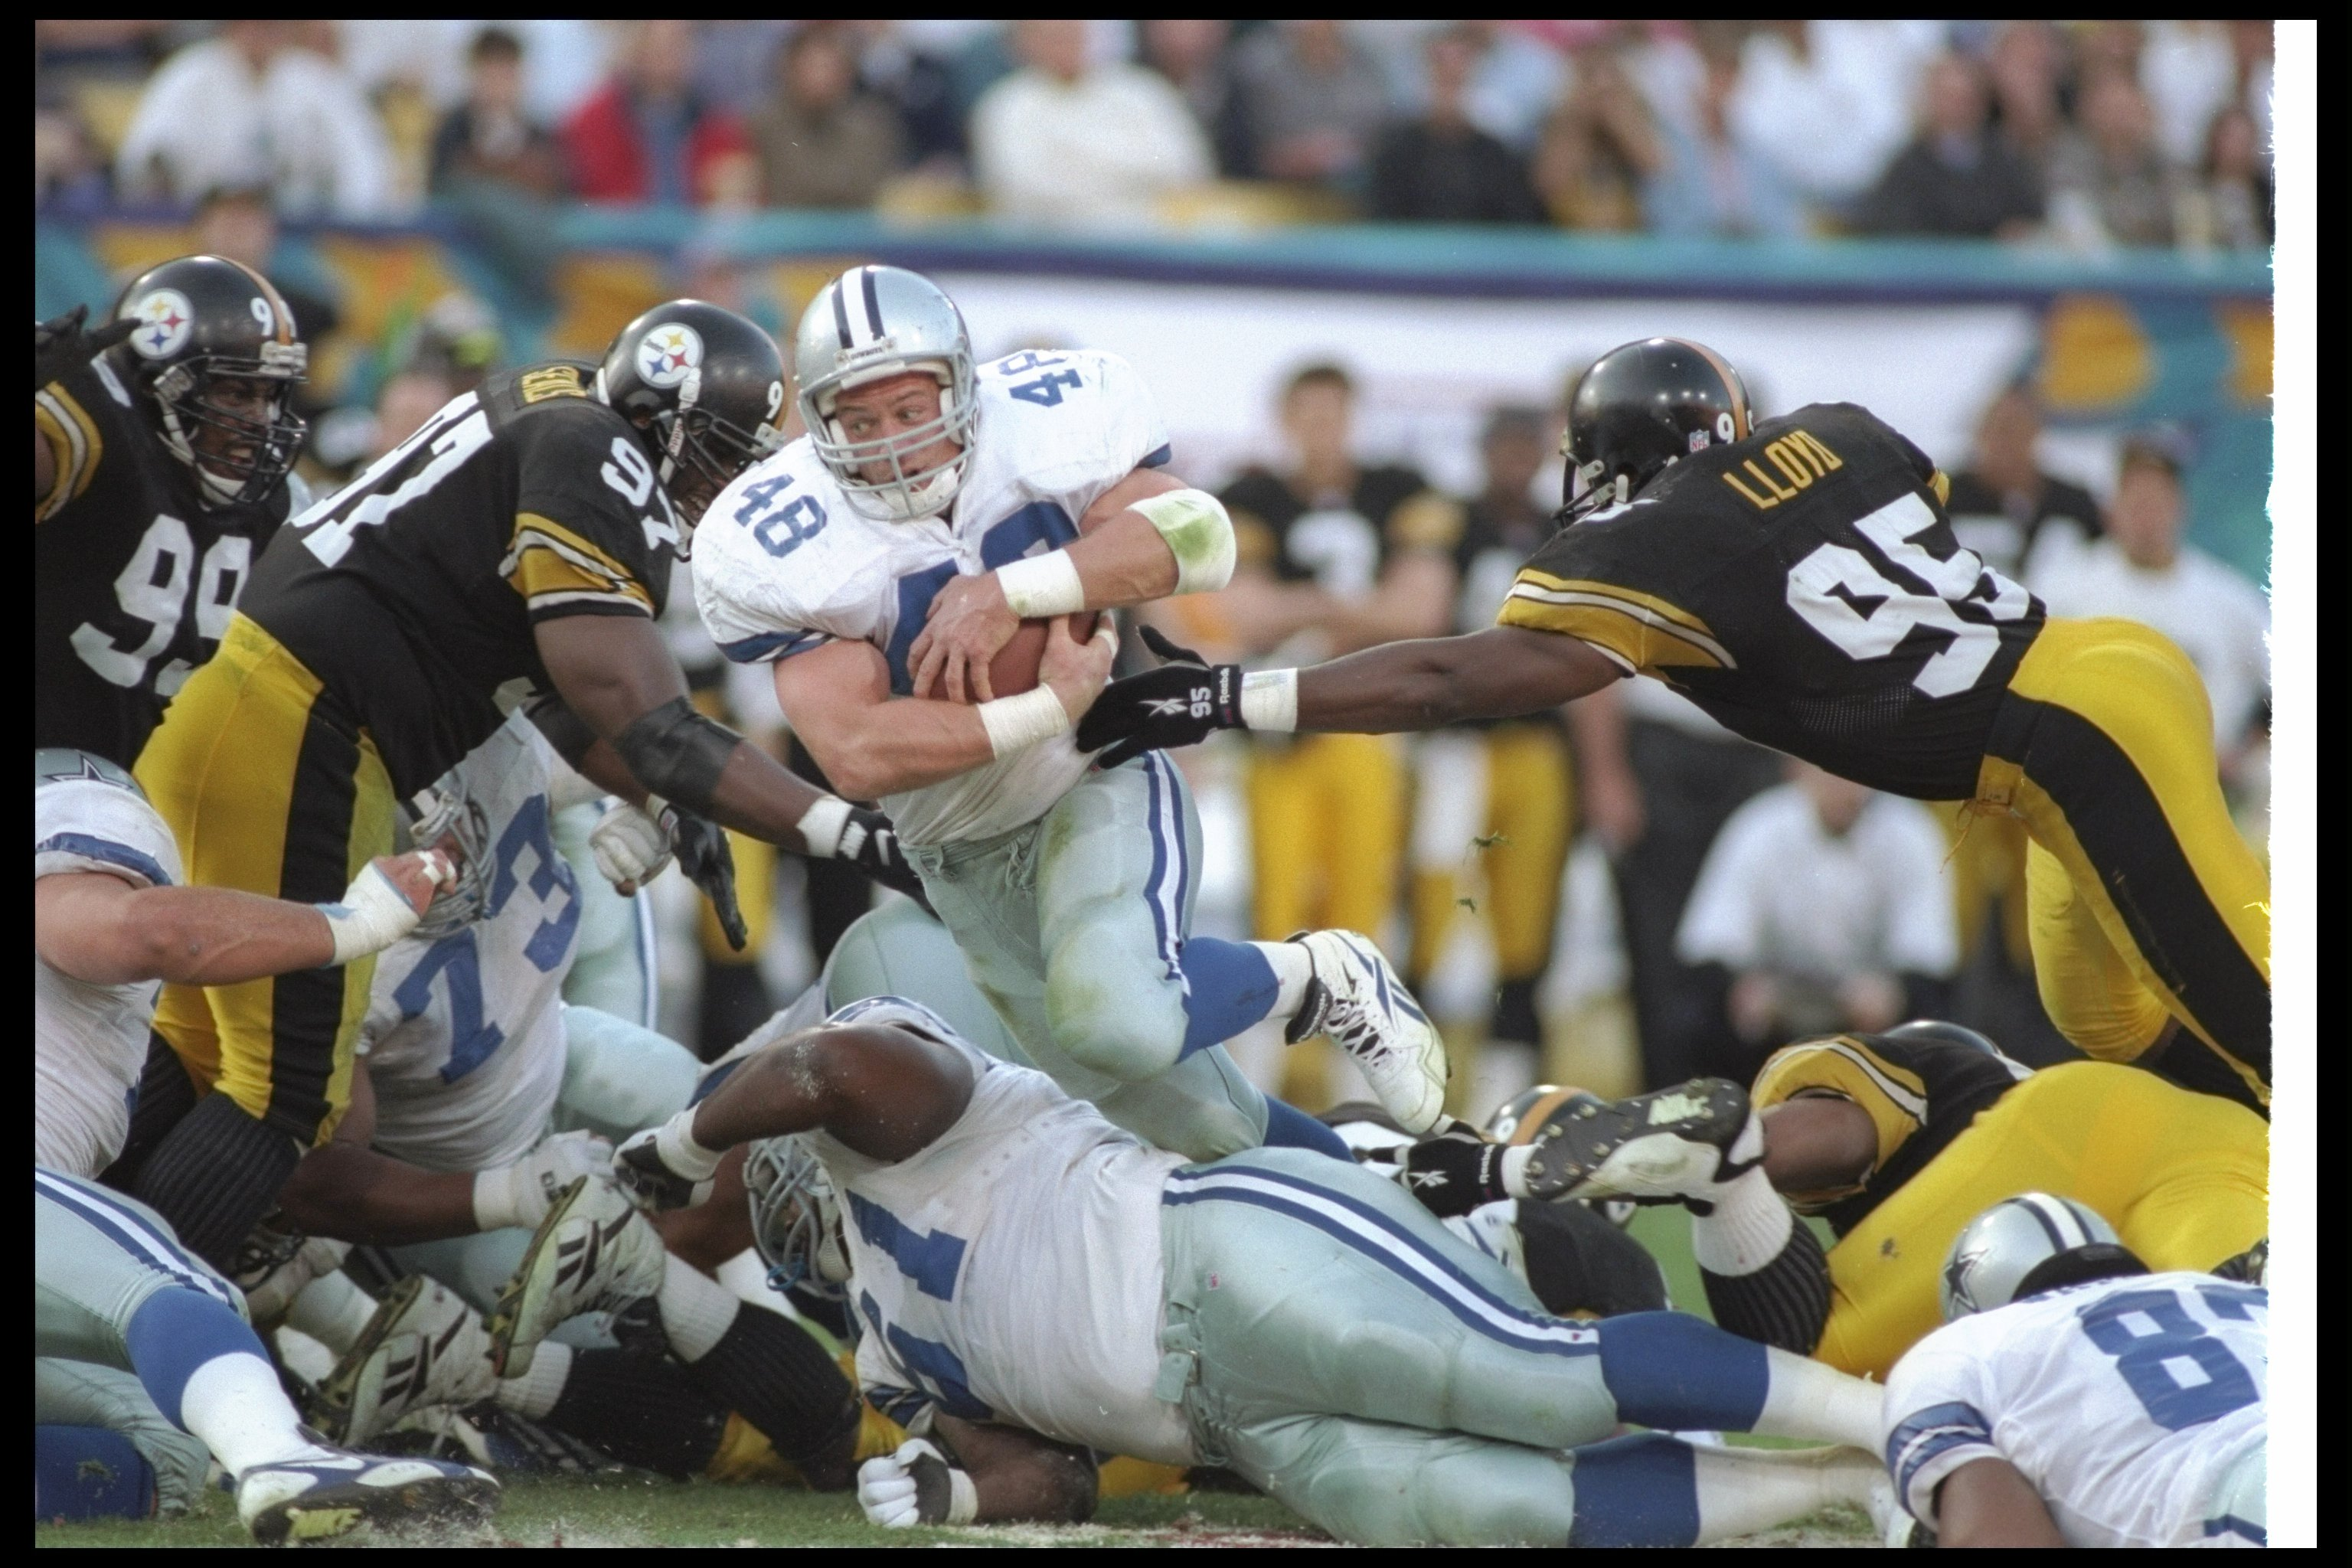 Jan running back darryl johnston of the dallas cowboys center breaks jpg  3072x2048 Dallas cowboys 75th 2d5f6fb76